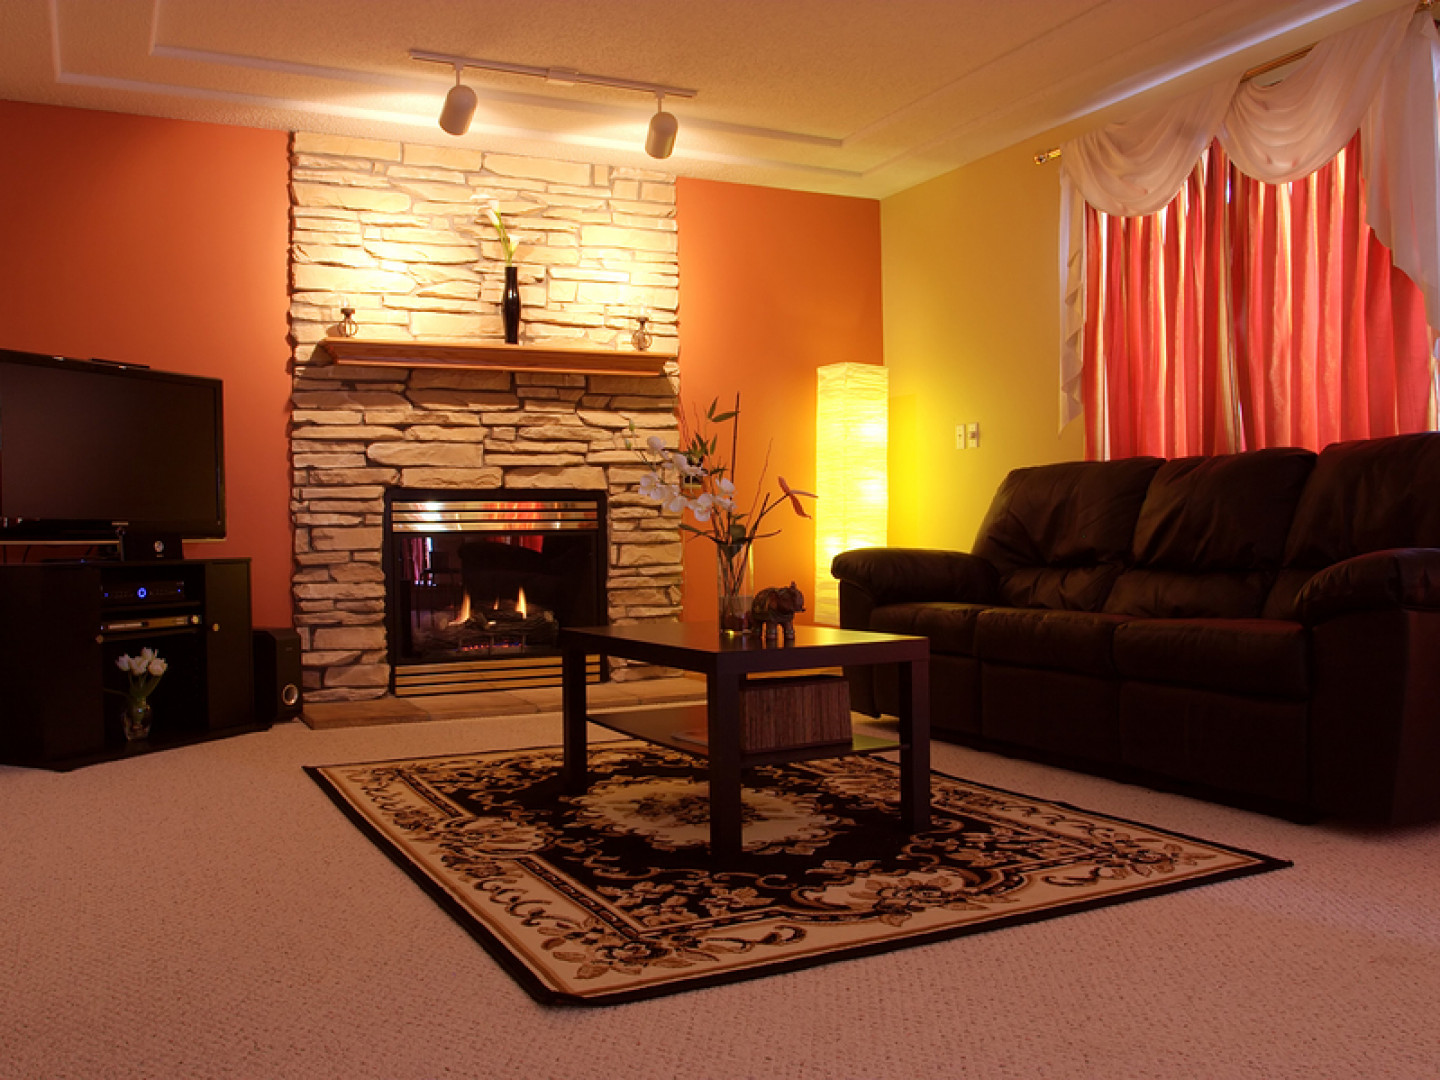 fireplace repair and fireplace installation by ZoomFix serving Sioux Falls, Brandon, Harrisburg & Tea, SD